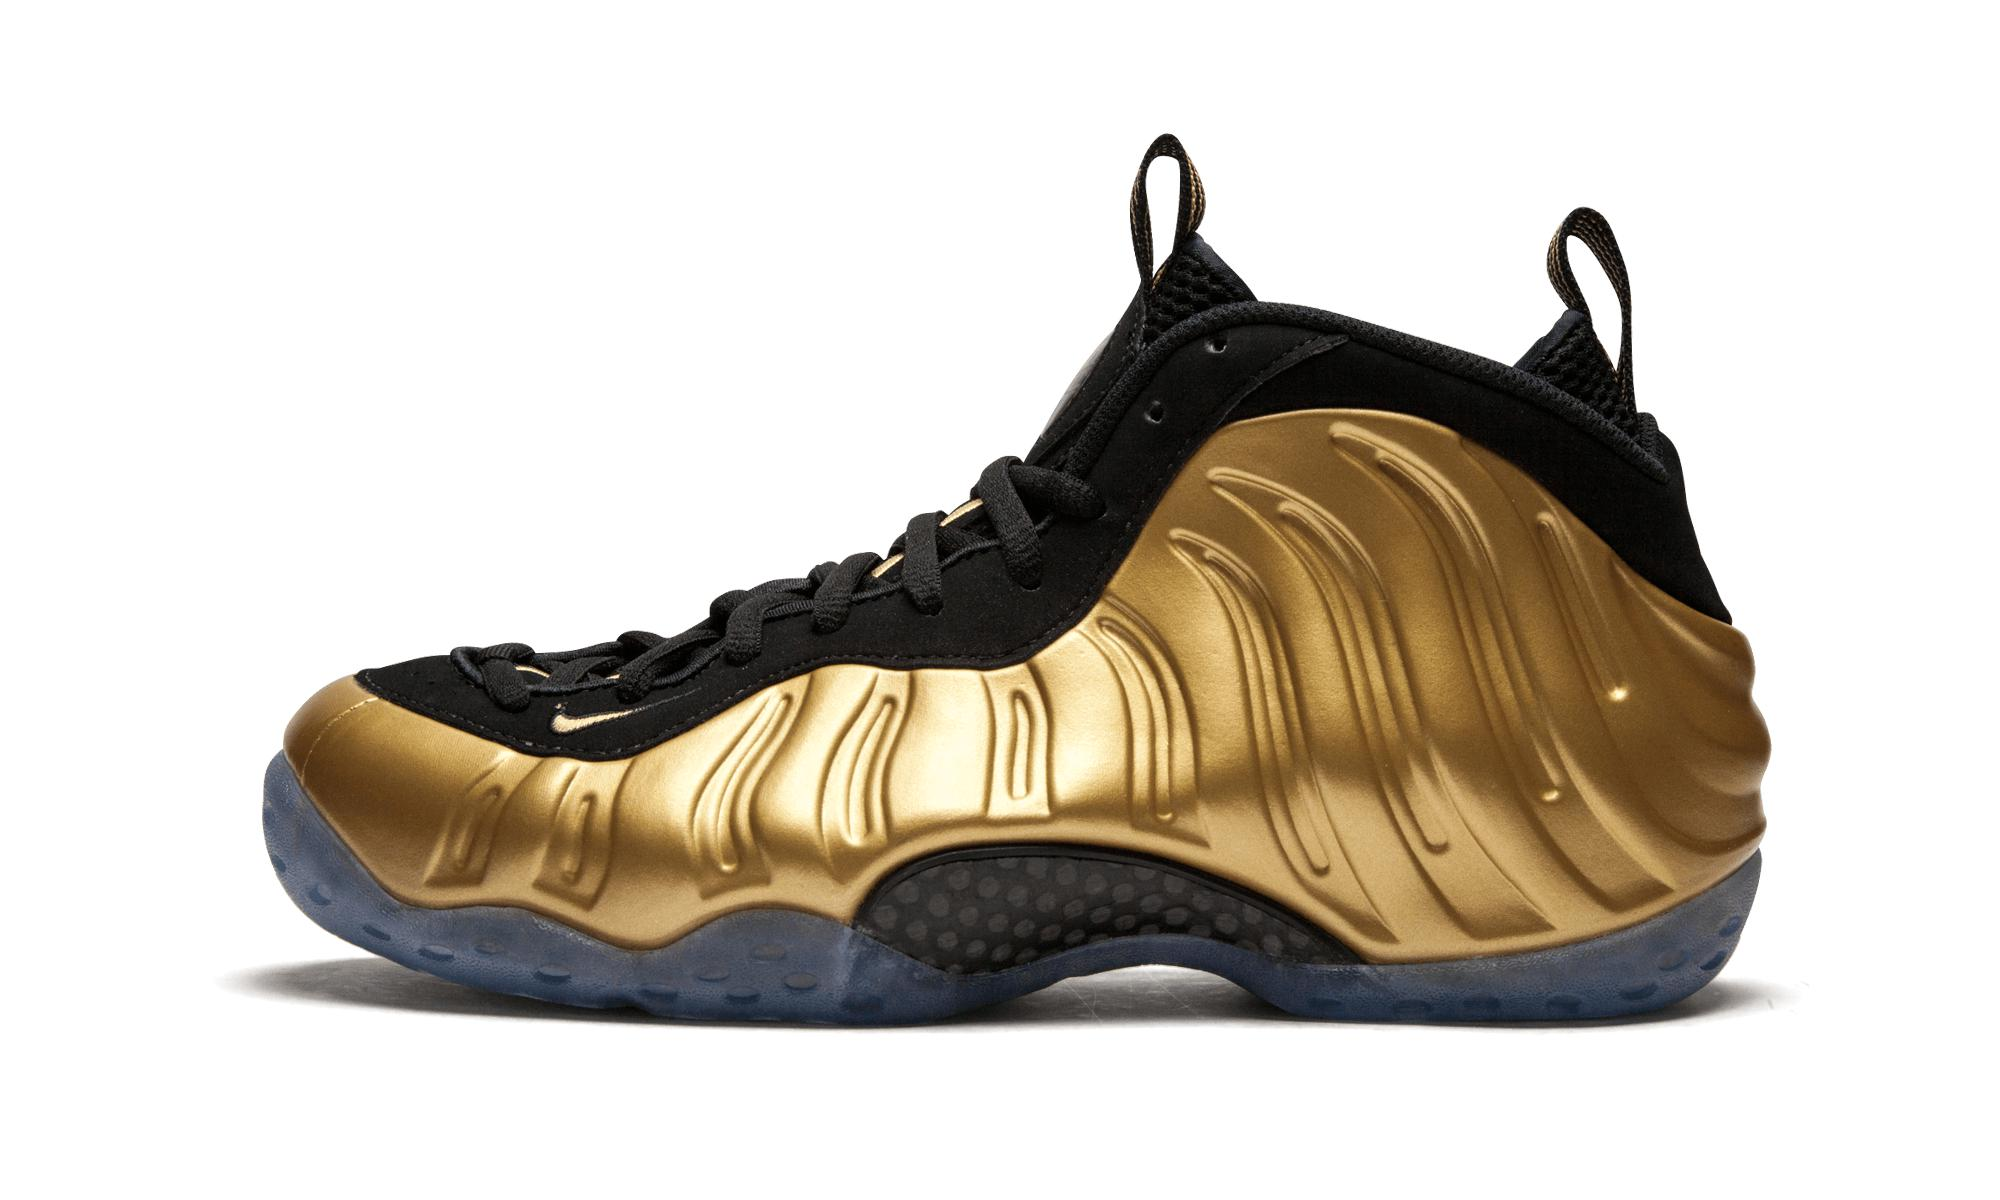 419aa391607a6 Nike Air Foamposite One in Metallic for Men - Save 58% - Lyst